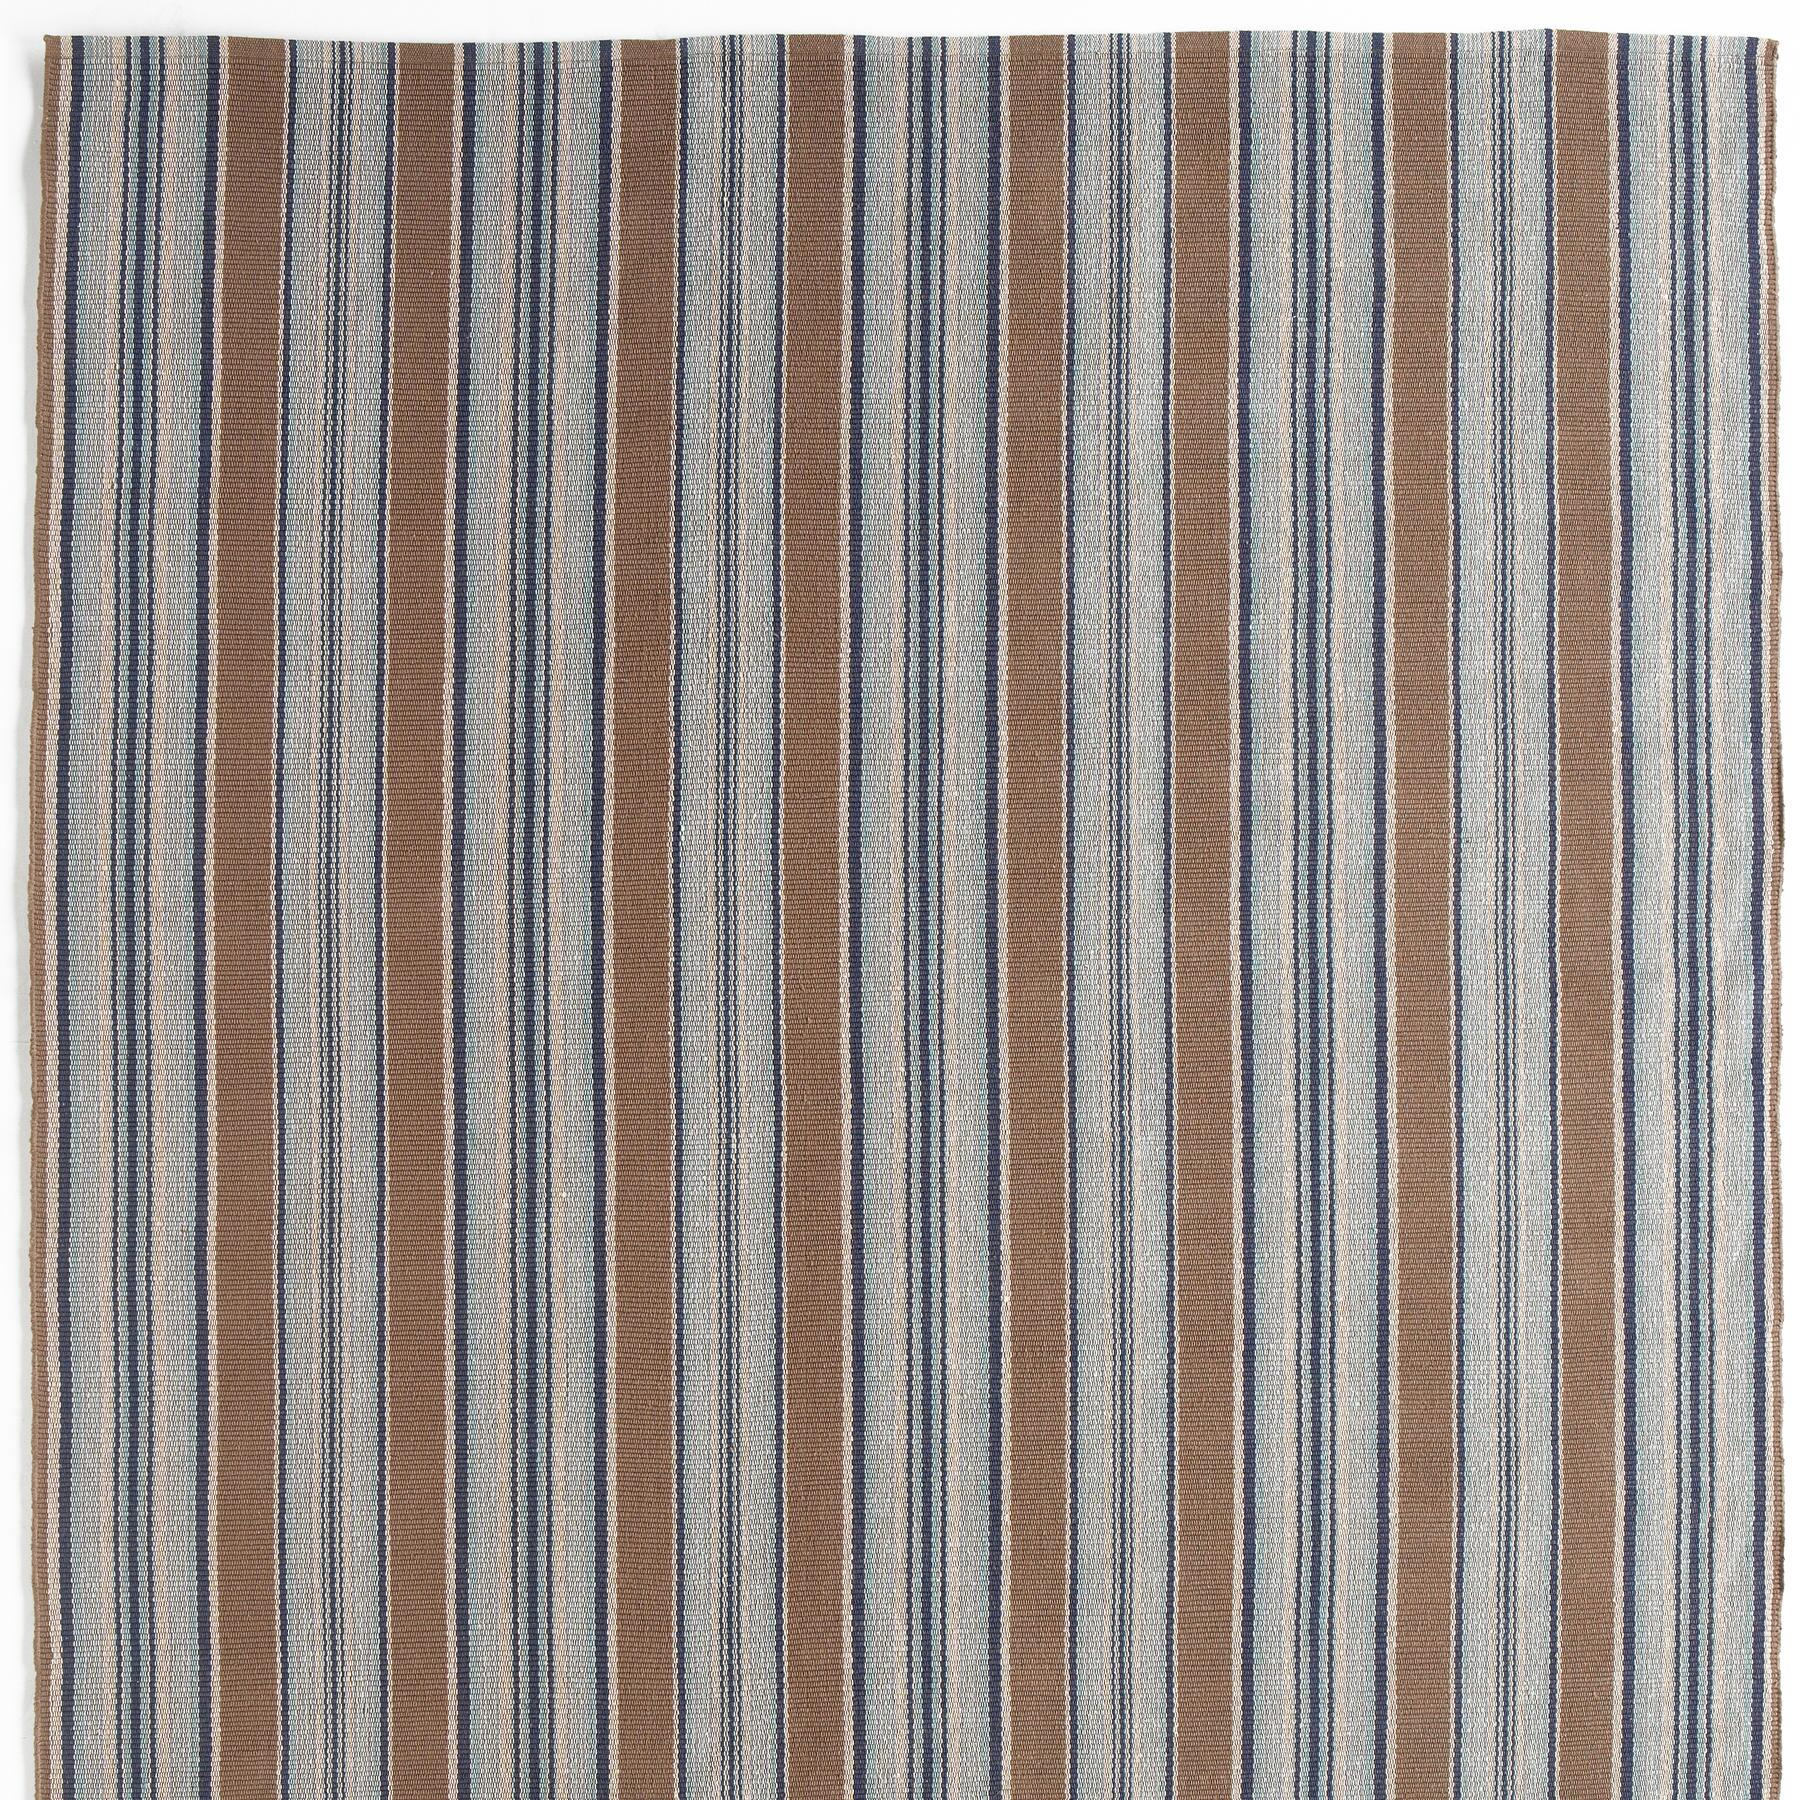 HERON STRIPE RUG, LARGE: View 1